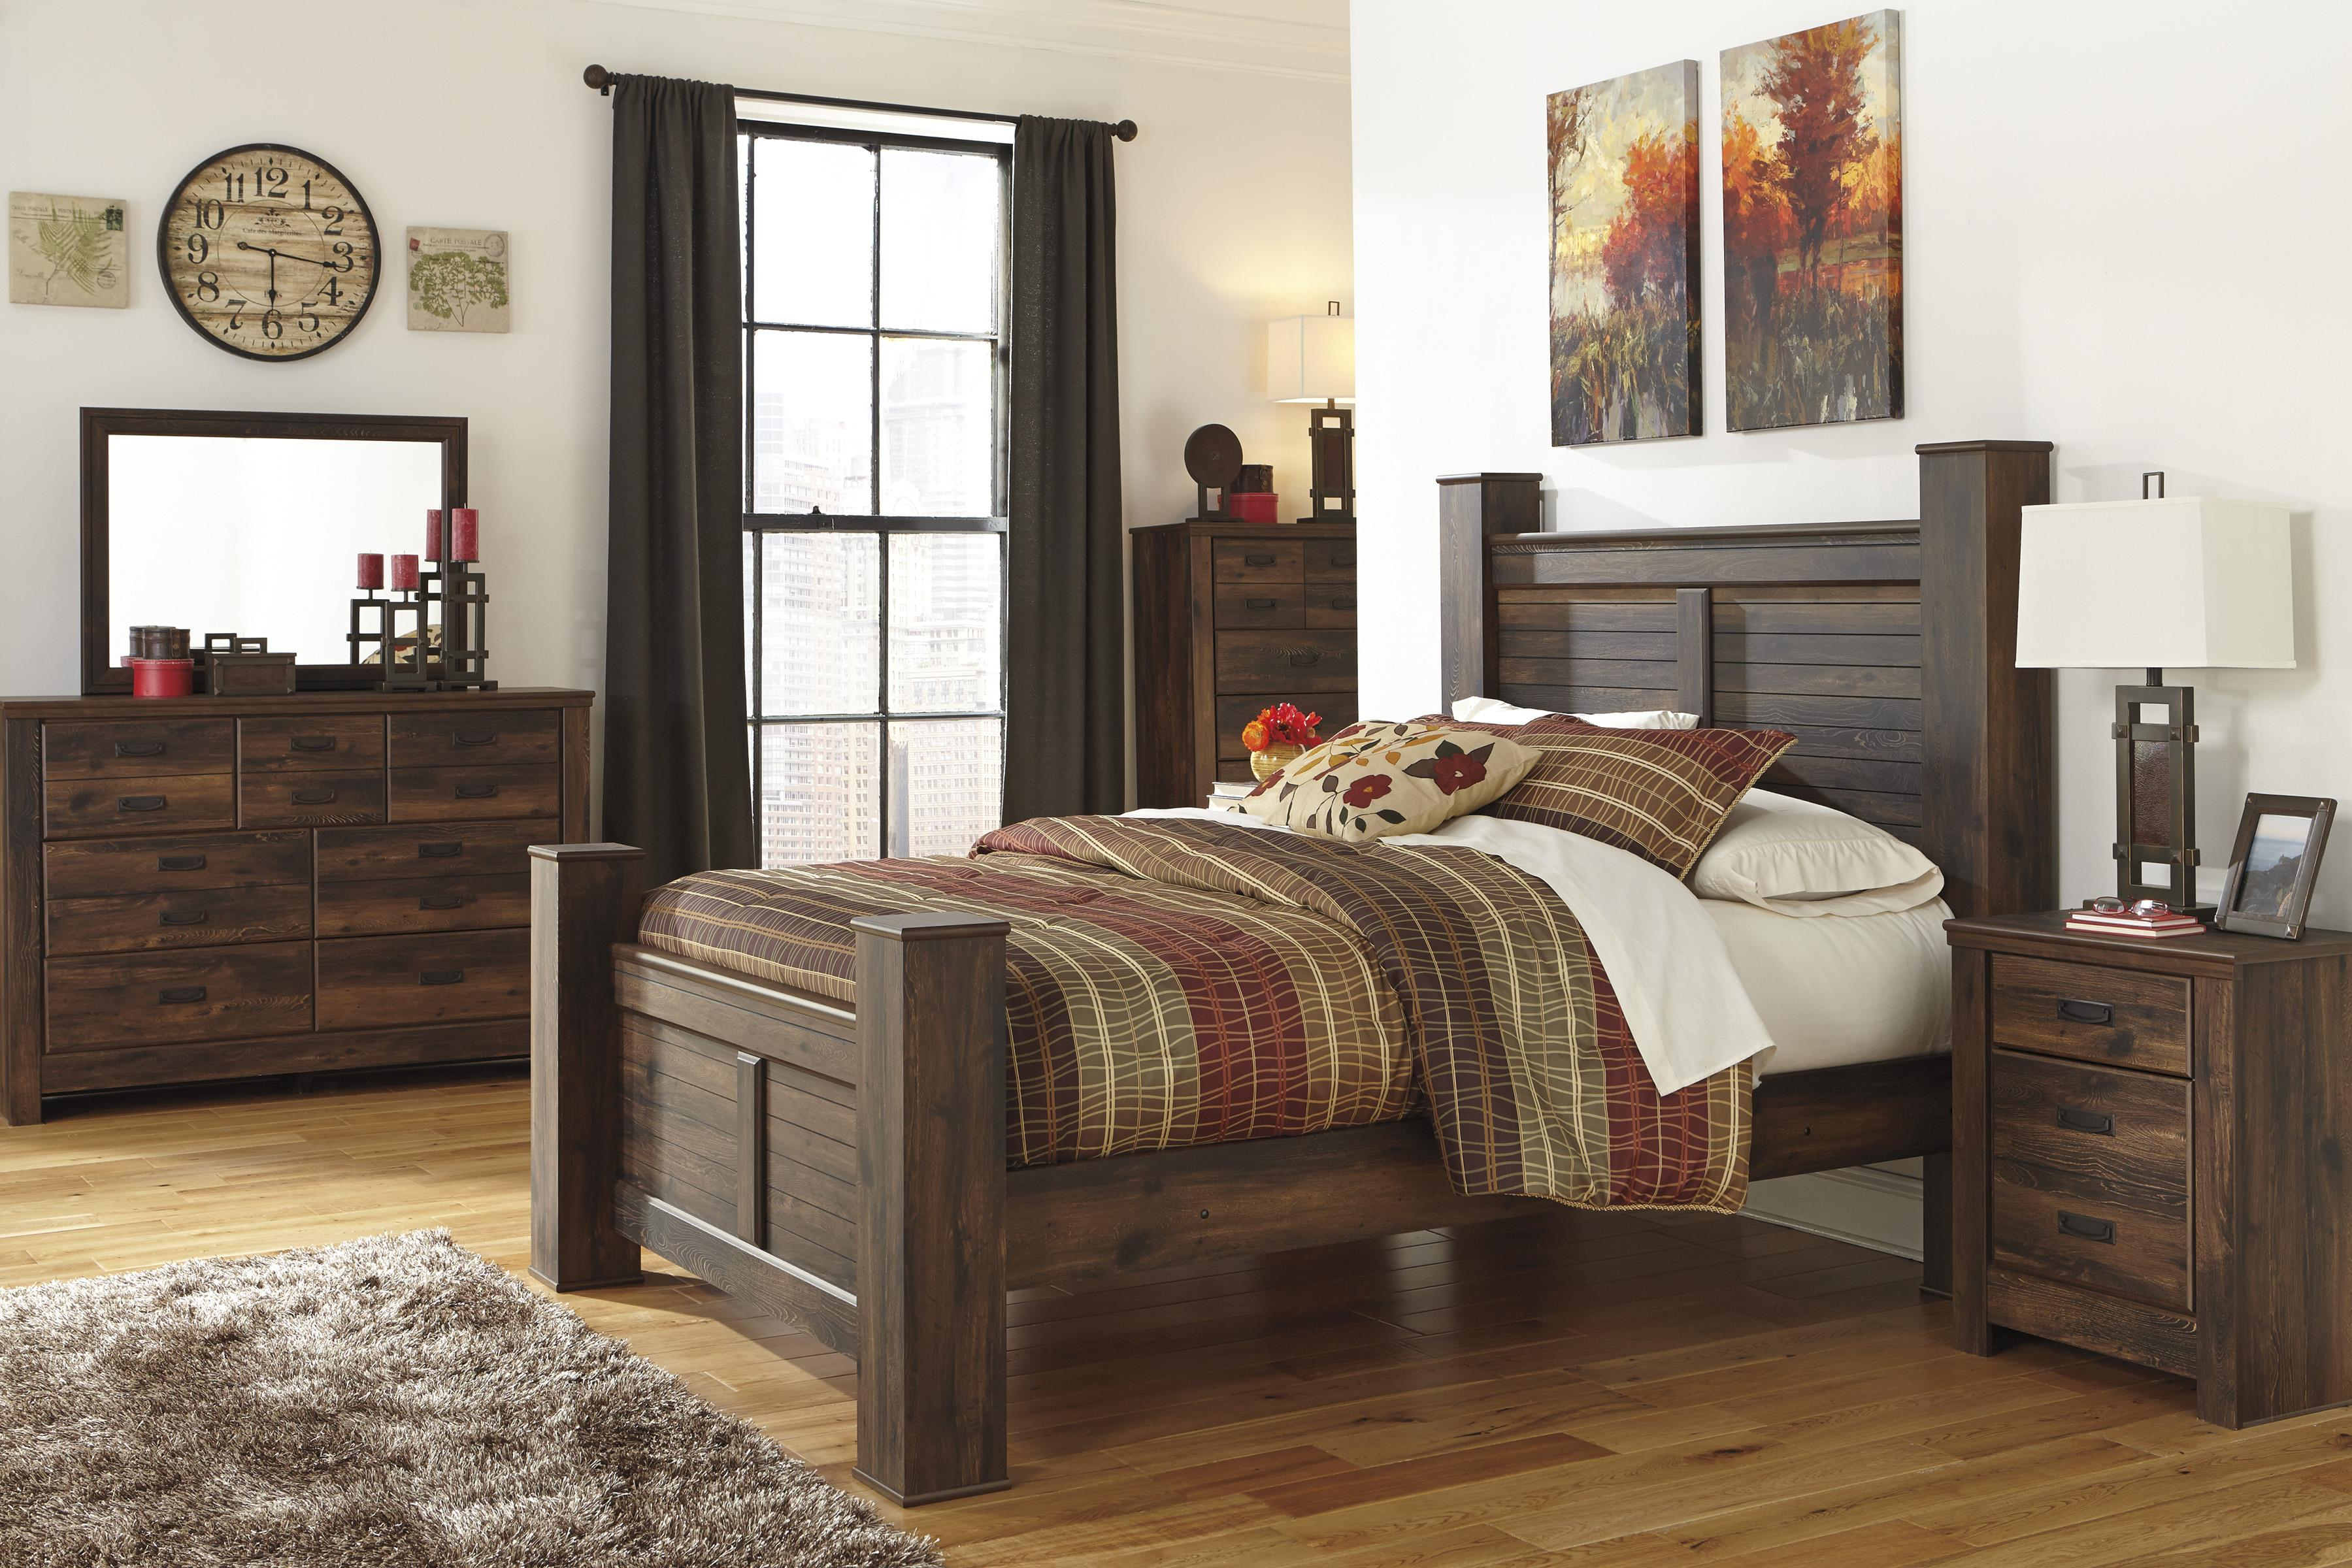 Queen Bedroom Group by Signature Design by Ashley